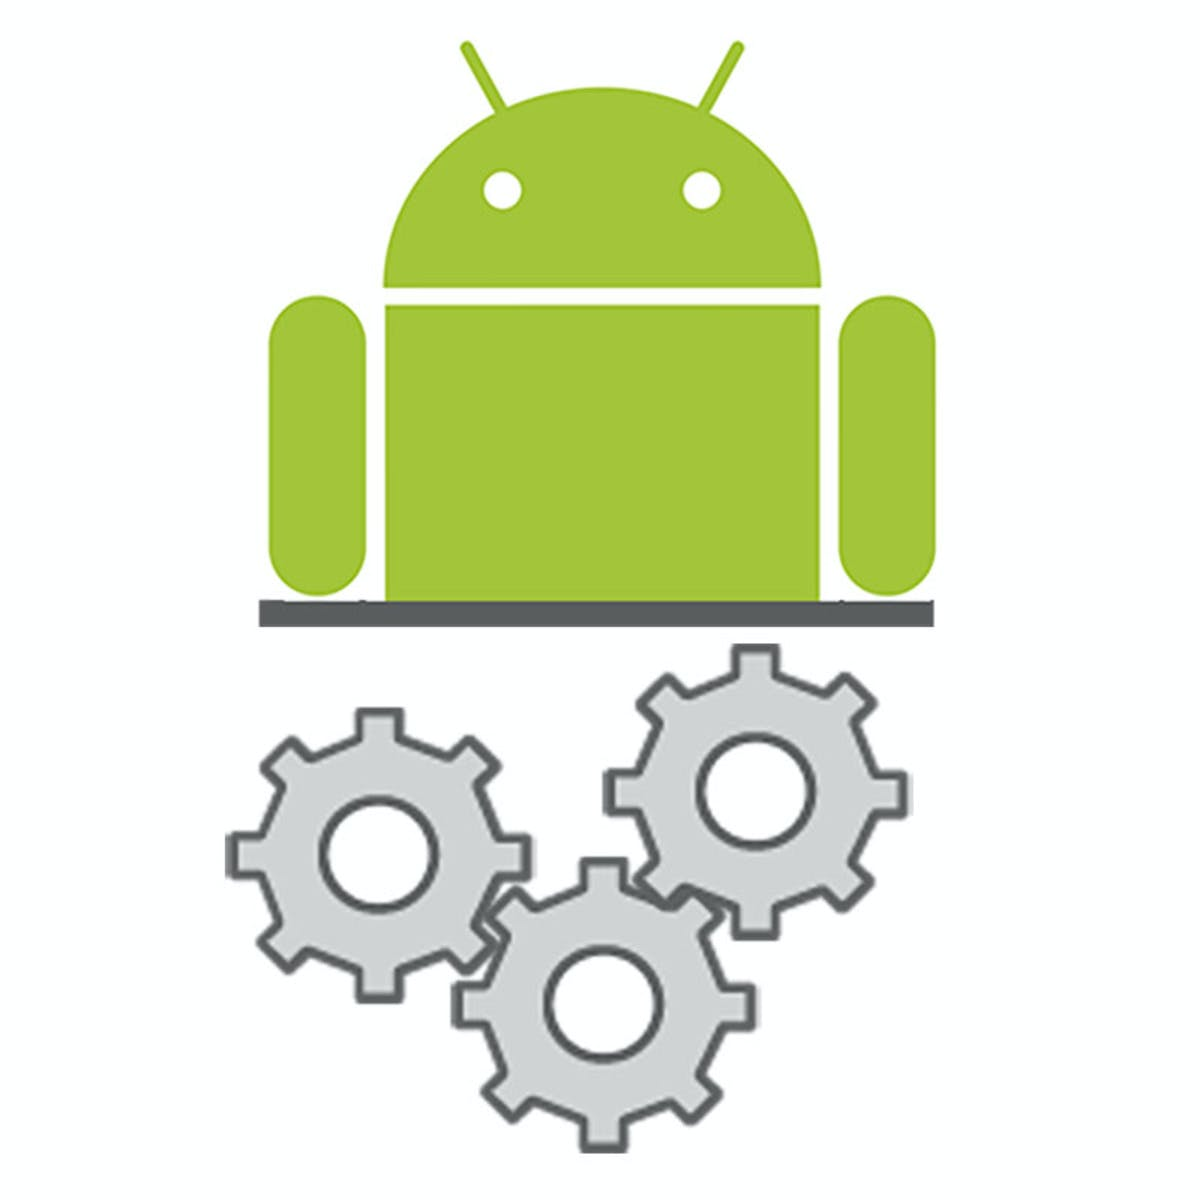 Android App Components - Intents, Activities, and Broadcast Receivers